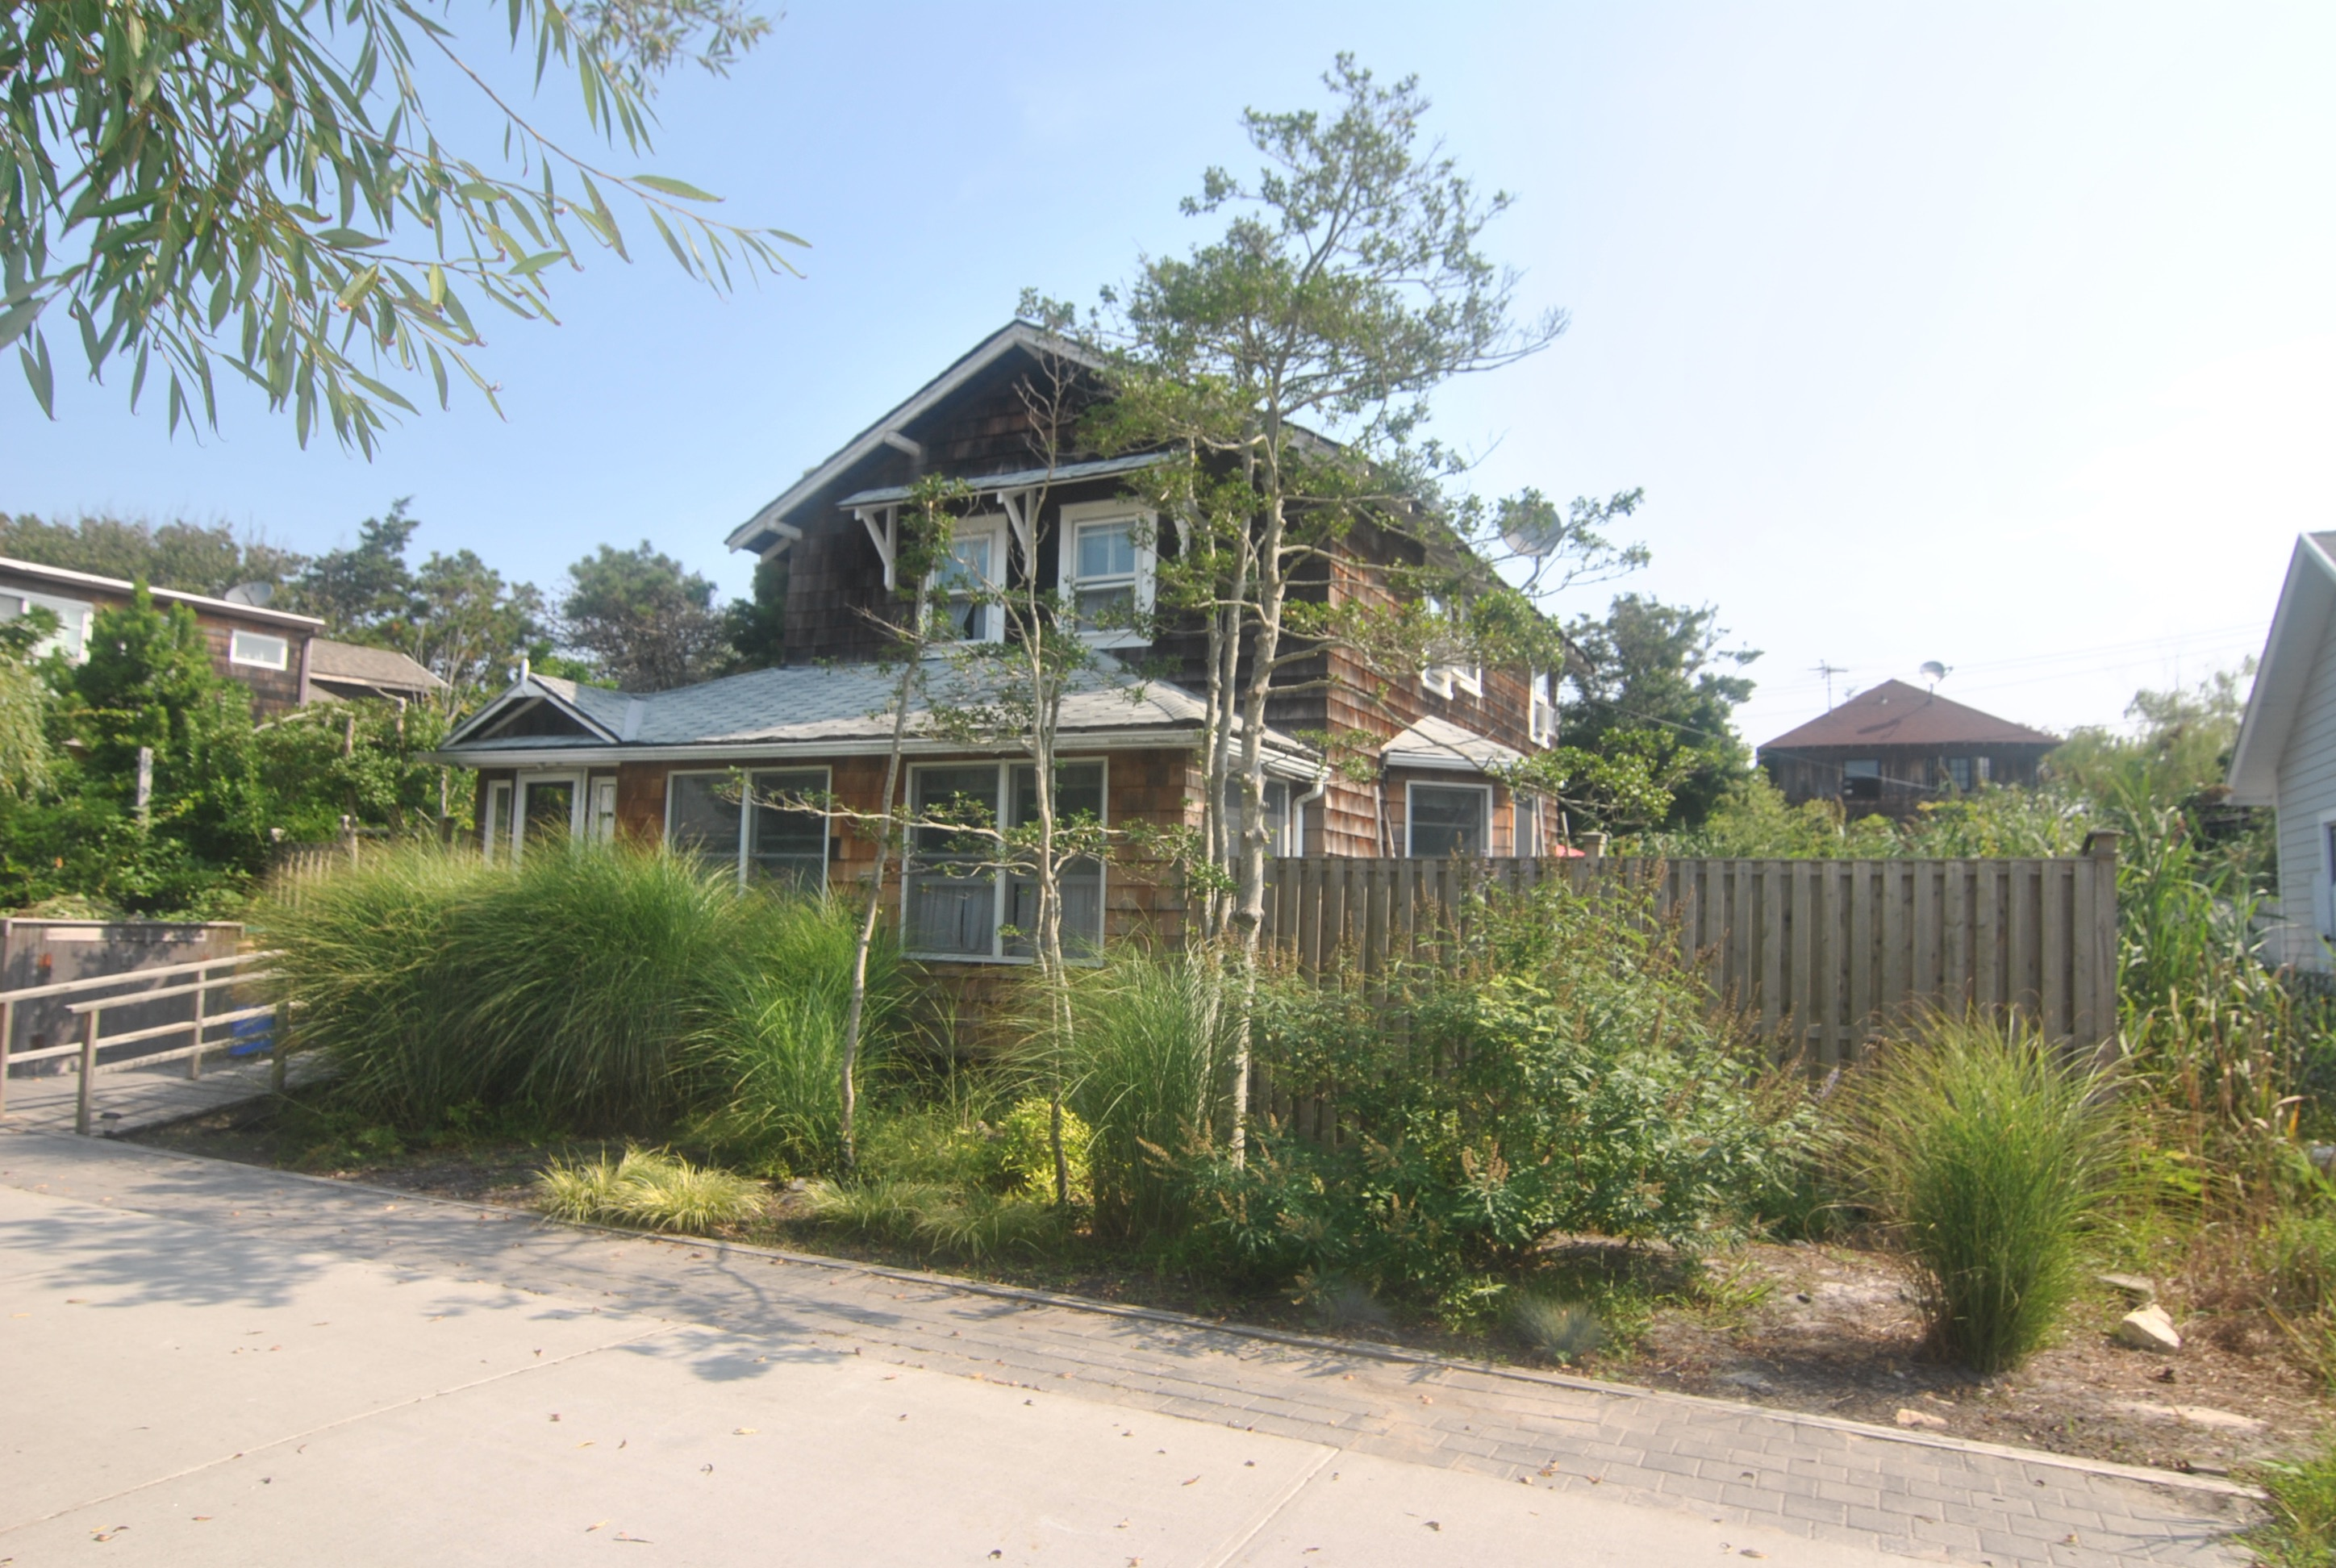 Exclusive Listing<br> This charming Ocean Beach home is filled with traditional charm, but has been modernized for today's buyer.  The sun filled chef's kitchen has been renovated to perfection and has granite countertops, Viking range, a large table to accommodate the whole family and huge sliding glass doors leading to the spacious deck.  The home's 1.5 baths are fully renovated as well.    3 spacious bedrooms.  Great location on the beach block.  Must see to appreciate the fine finishes in this home.